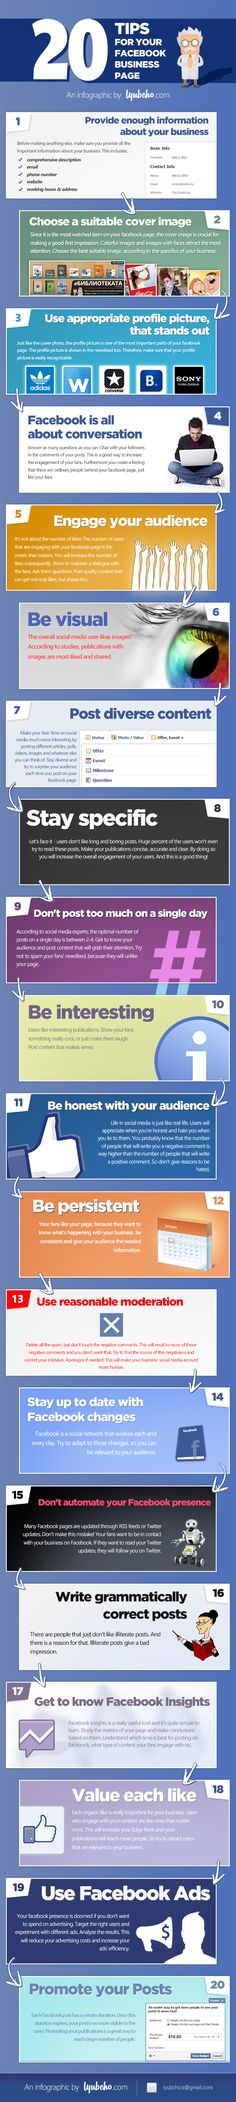 "This is my first attempt at making an infographic. The infographic is called ""20 Tips for your Facebook Business Page"" and I hope you'll find it useful. I'll be really greatful if you leave your comments at the end of this post"